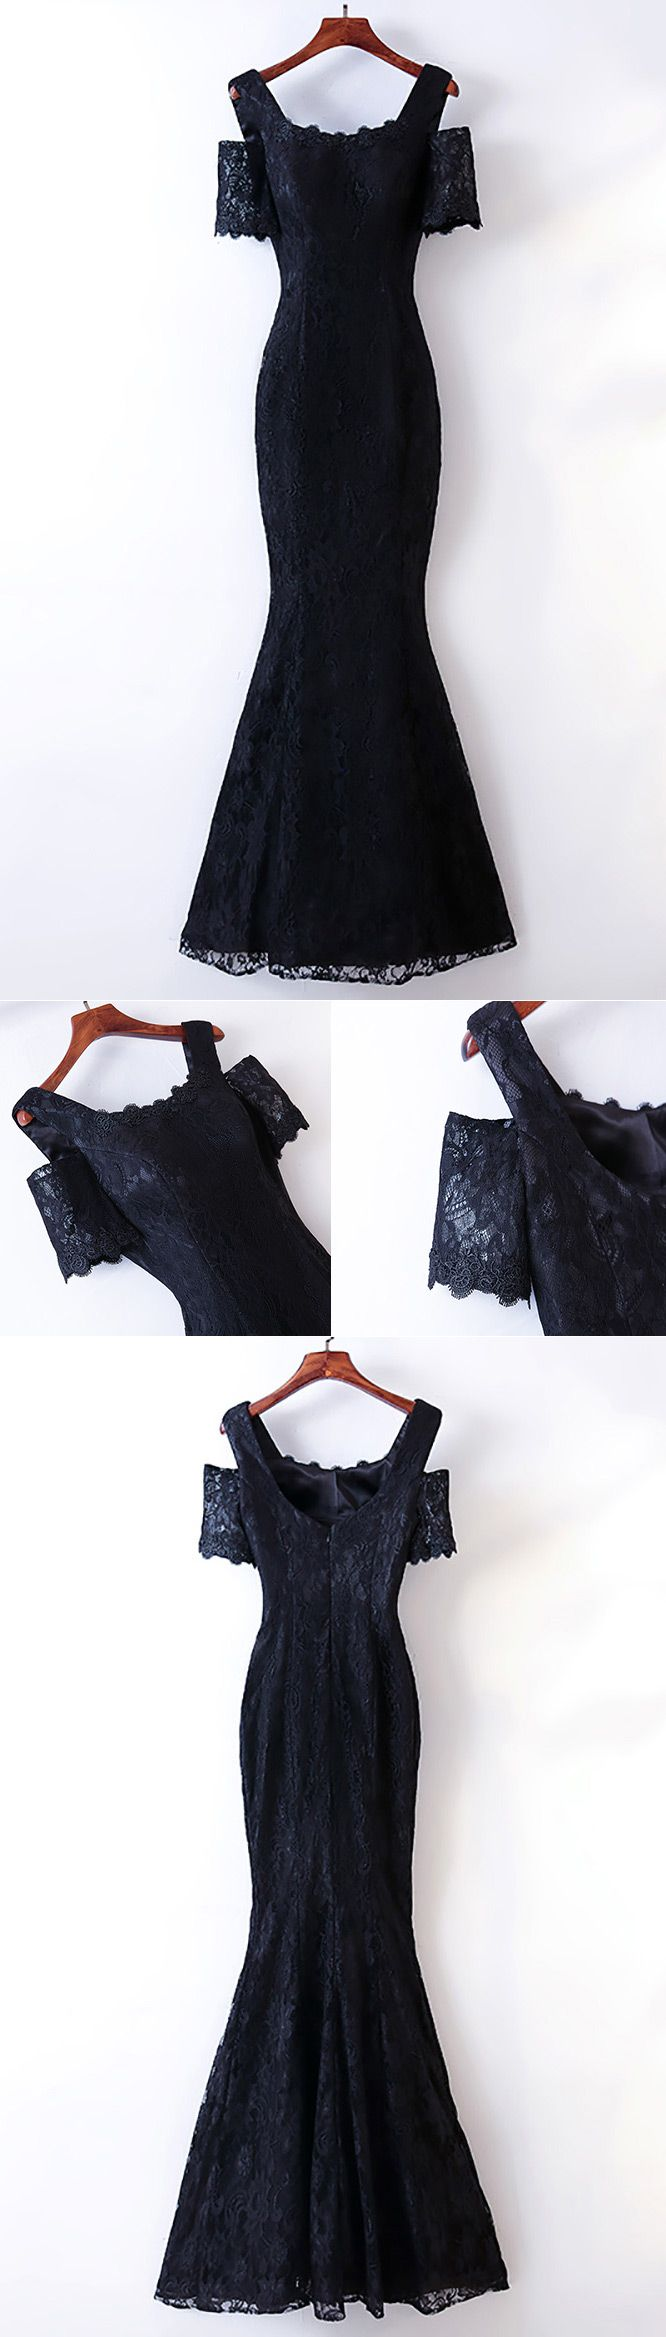 Only $118, Elegant Long Black Lace Mermaid Prom Dress Cold Shoulder #MYX18162 at #SheProm. SheProm is an online store with thousands of dresses, range from Prom,Formal,Evening,Black,Long Black Dresses,Black Lace Dresses,Lace Dresses,Long Dresses,Customizable Dresses and so on. Not only selling formal dresses, more and more trendy dress styles will be updated daily to our store. With low price and high quality guaranteed, you will definitely like shopping from us. Click to shop now!